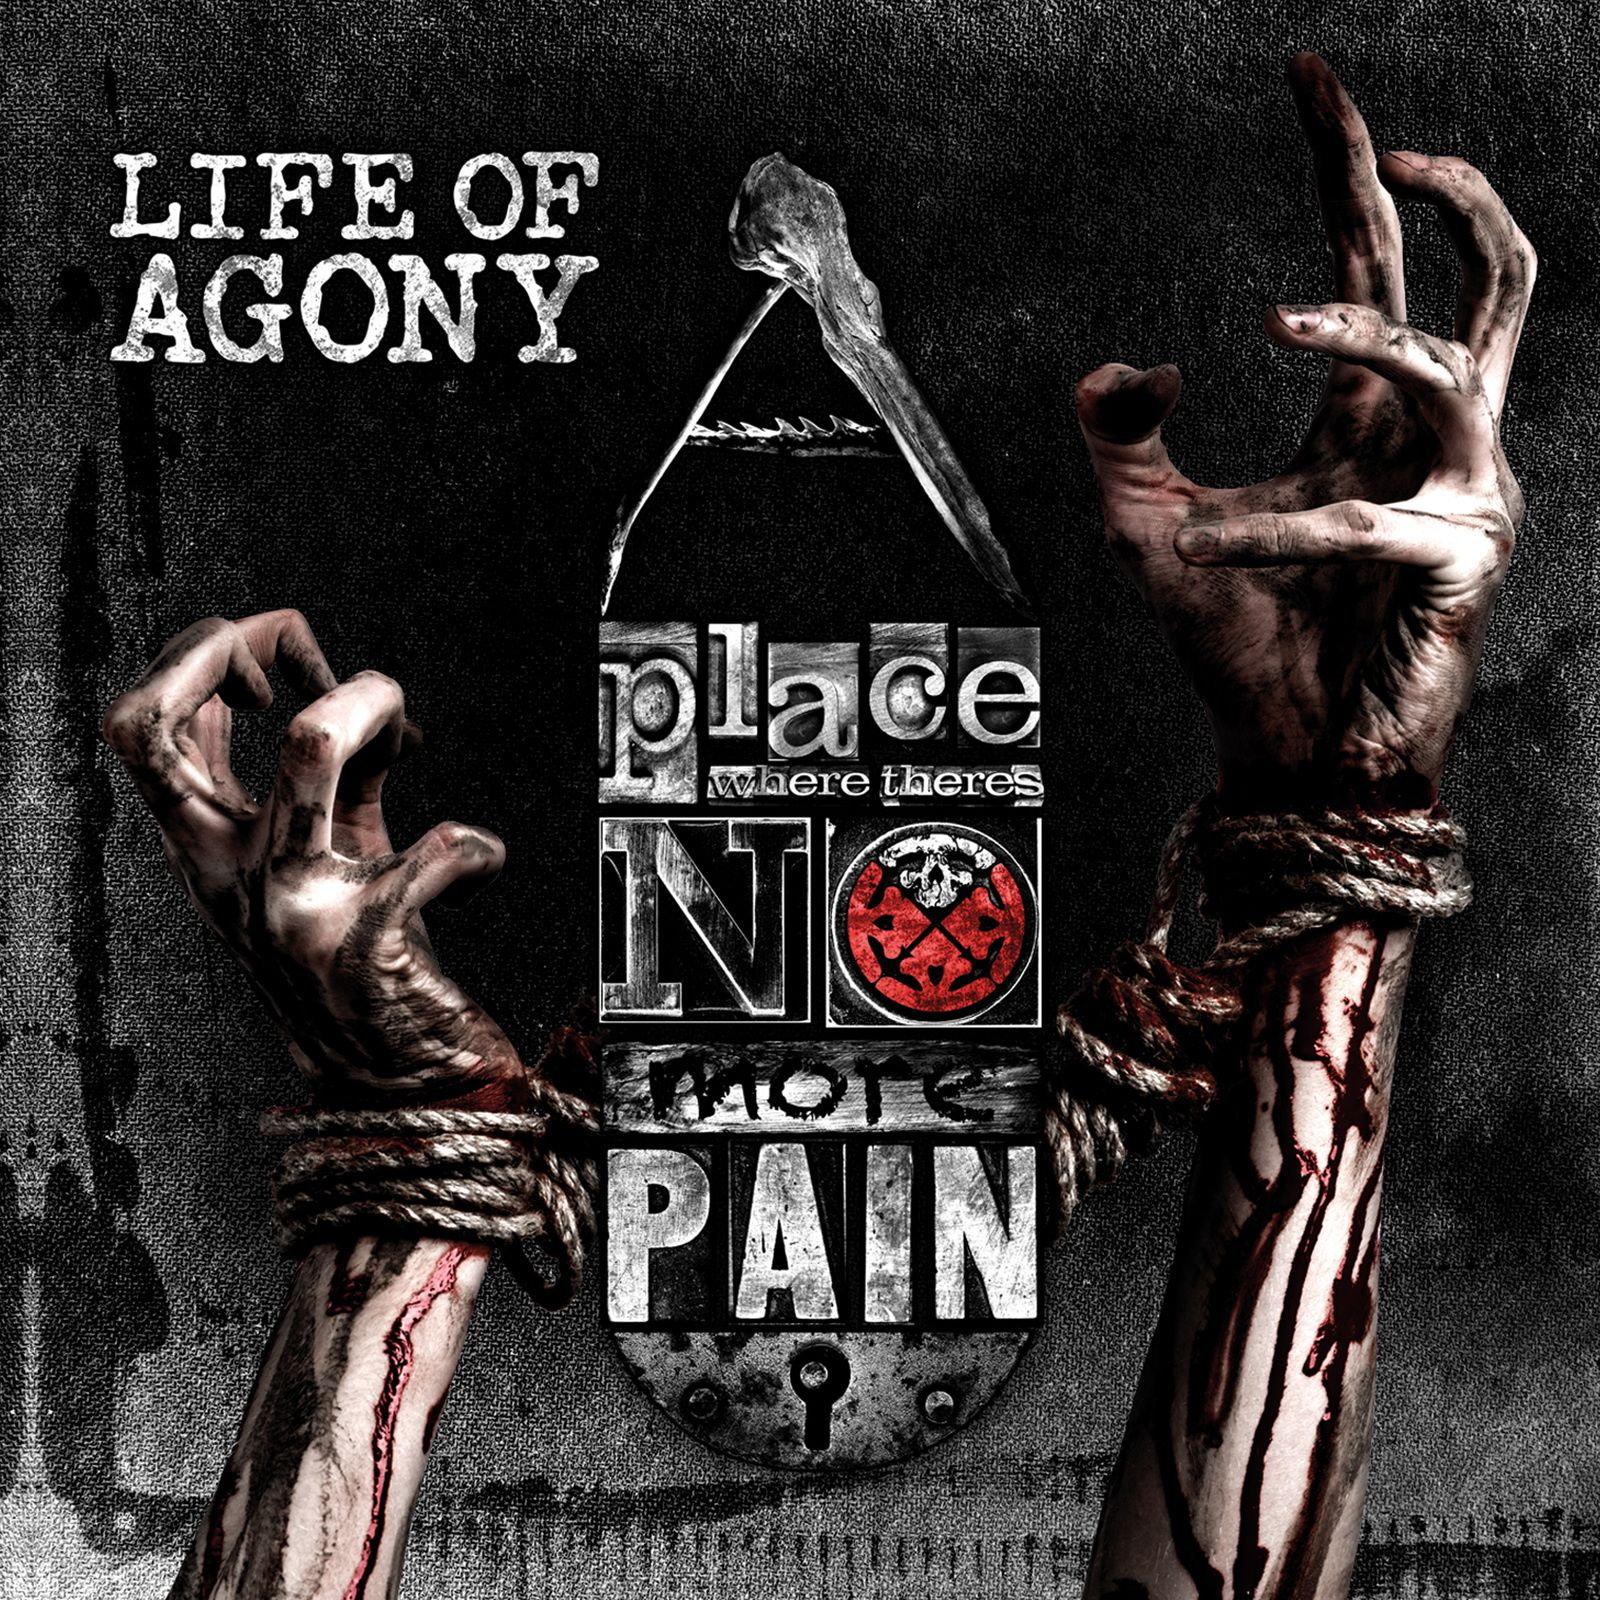 Nouvelle interview avec Mina Caputo de LIFE OF AGONY pour le nouvel album &quot&#x3B;A place where ther's no more pain&quot&#x3B;